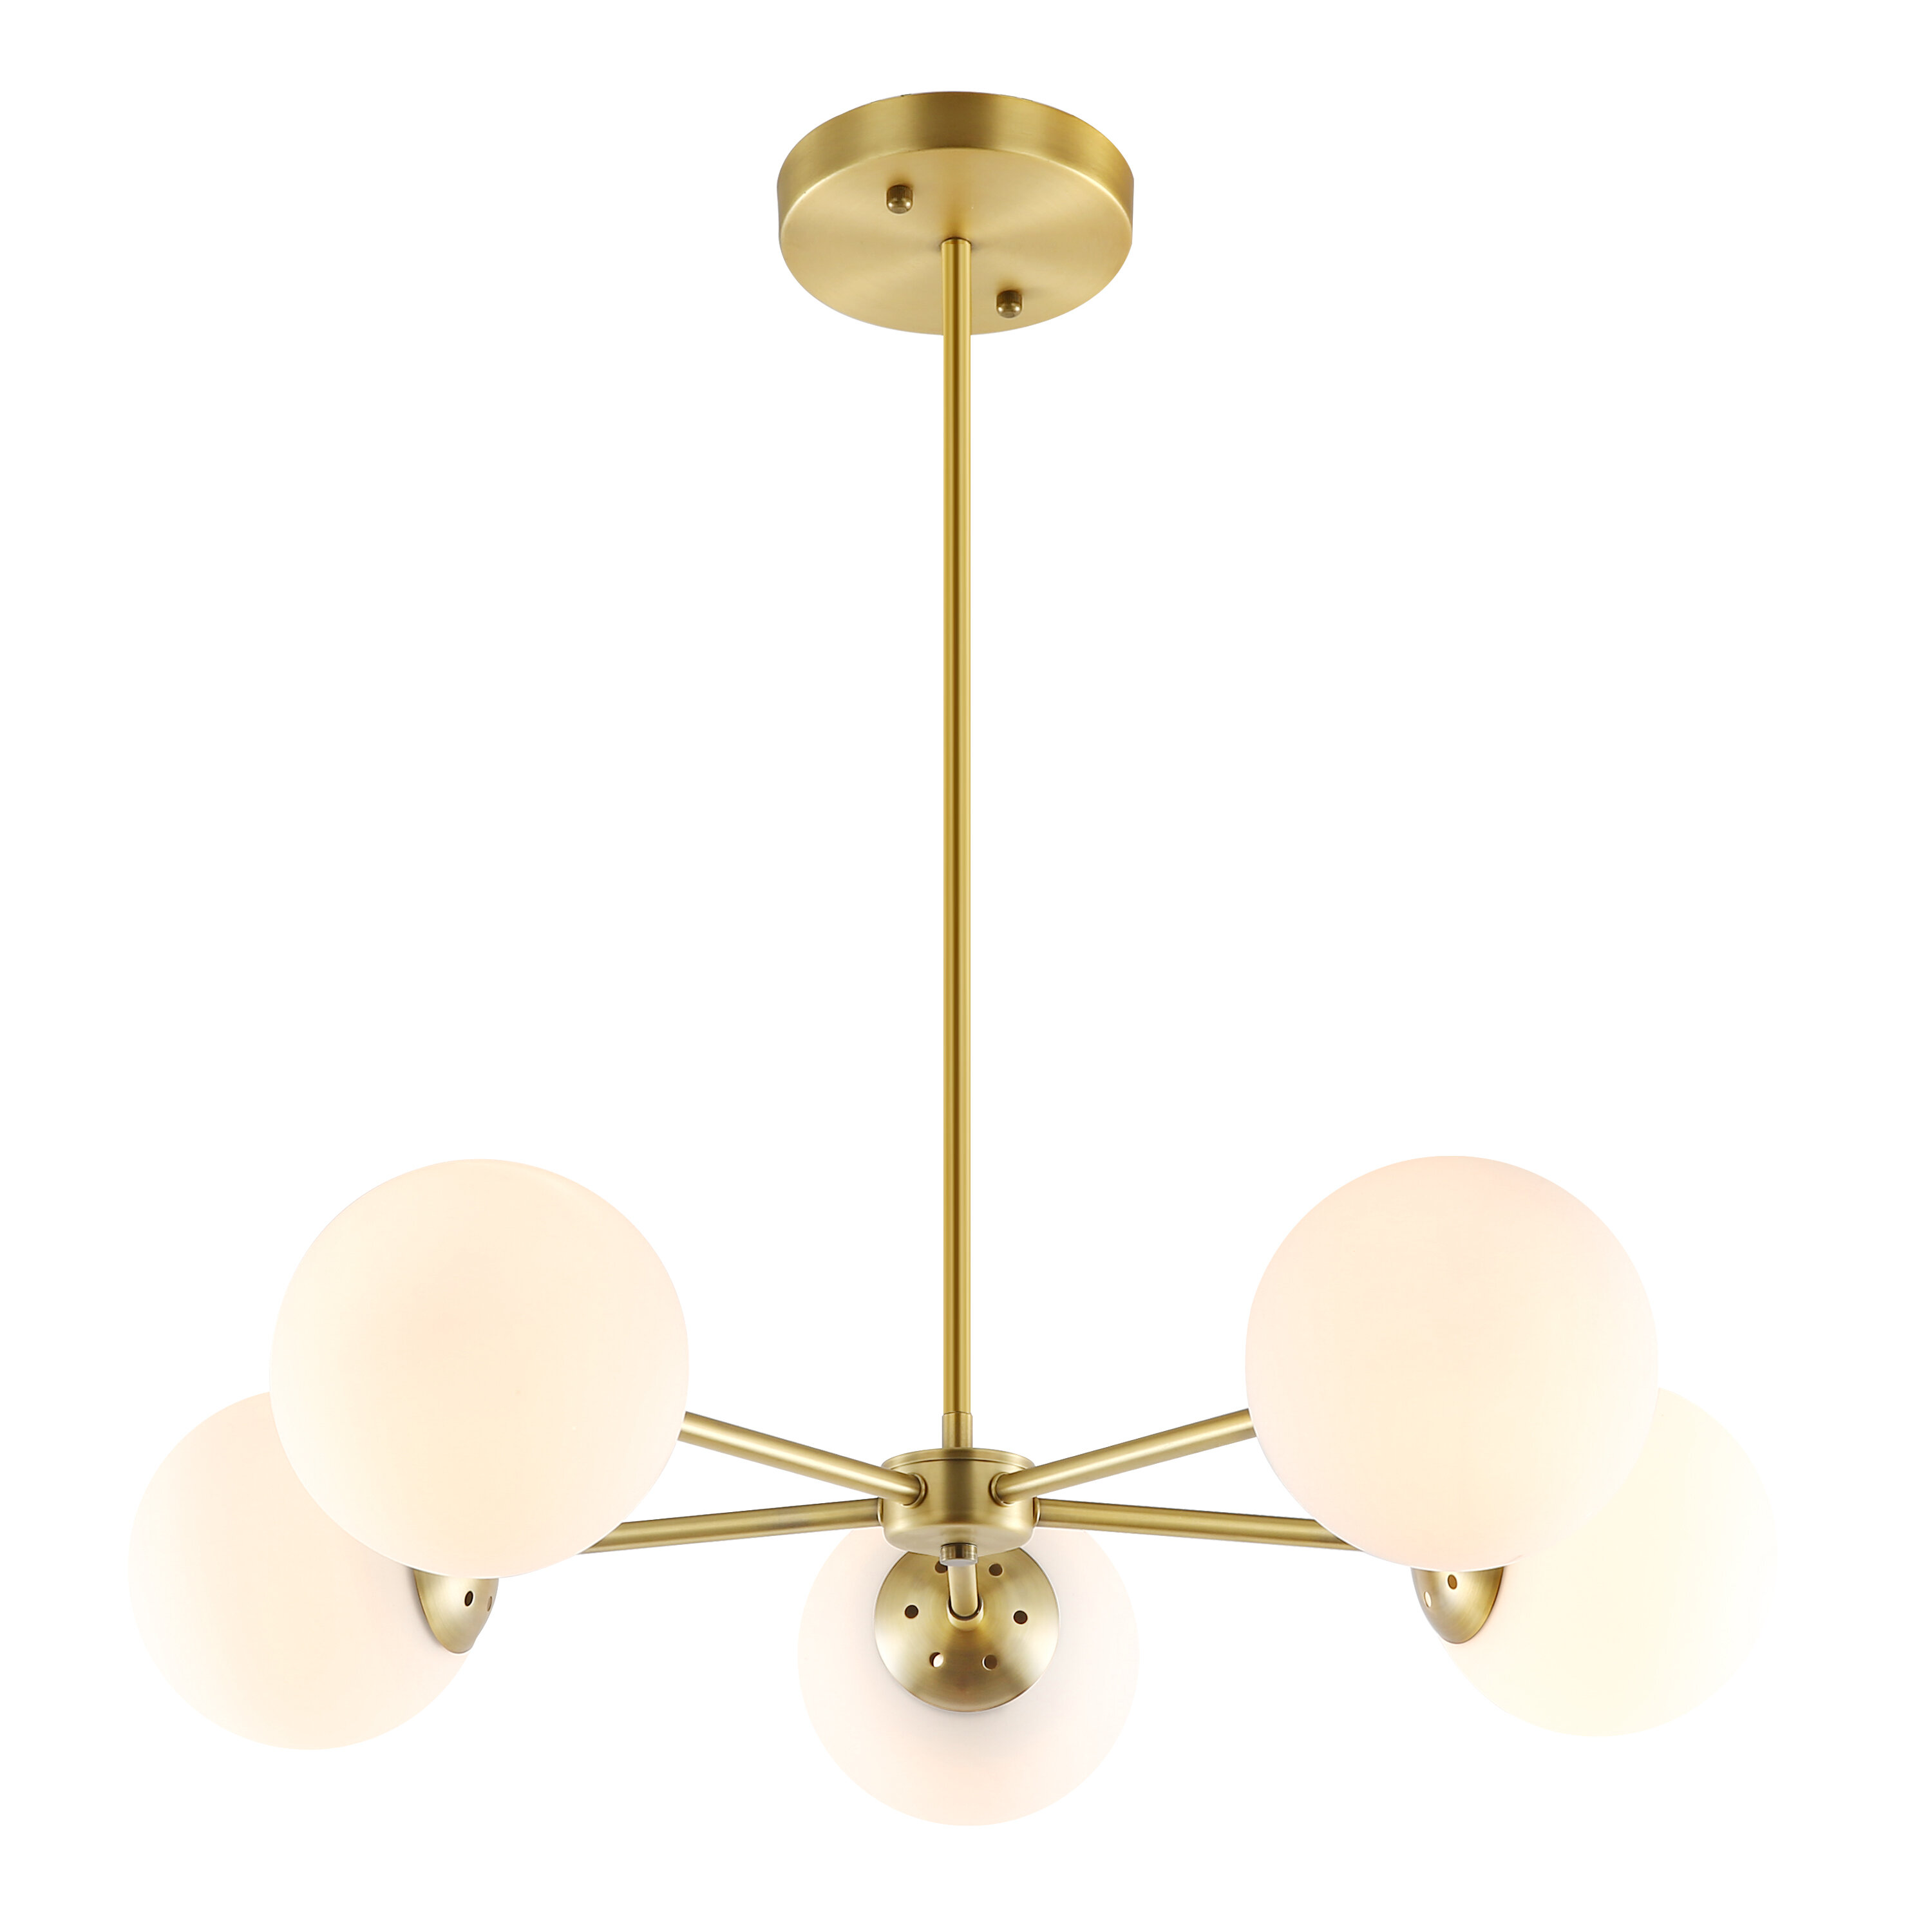 Modern And Contemporary Chandeliers Allmodern Extraordinary Pendant Light Wiring Kit Pics Decoration Inspiration Quickview